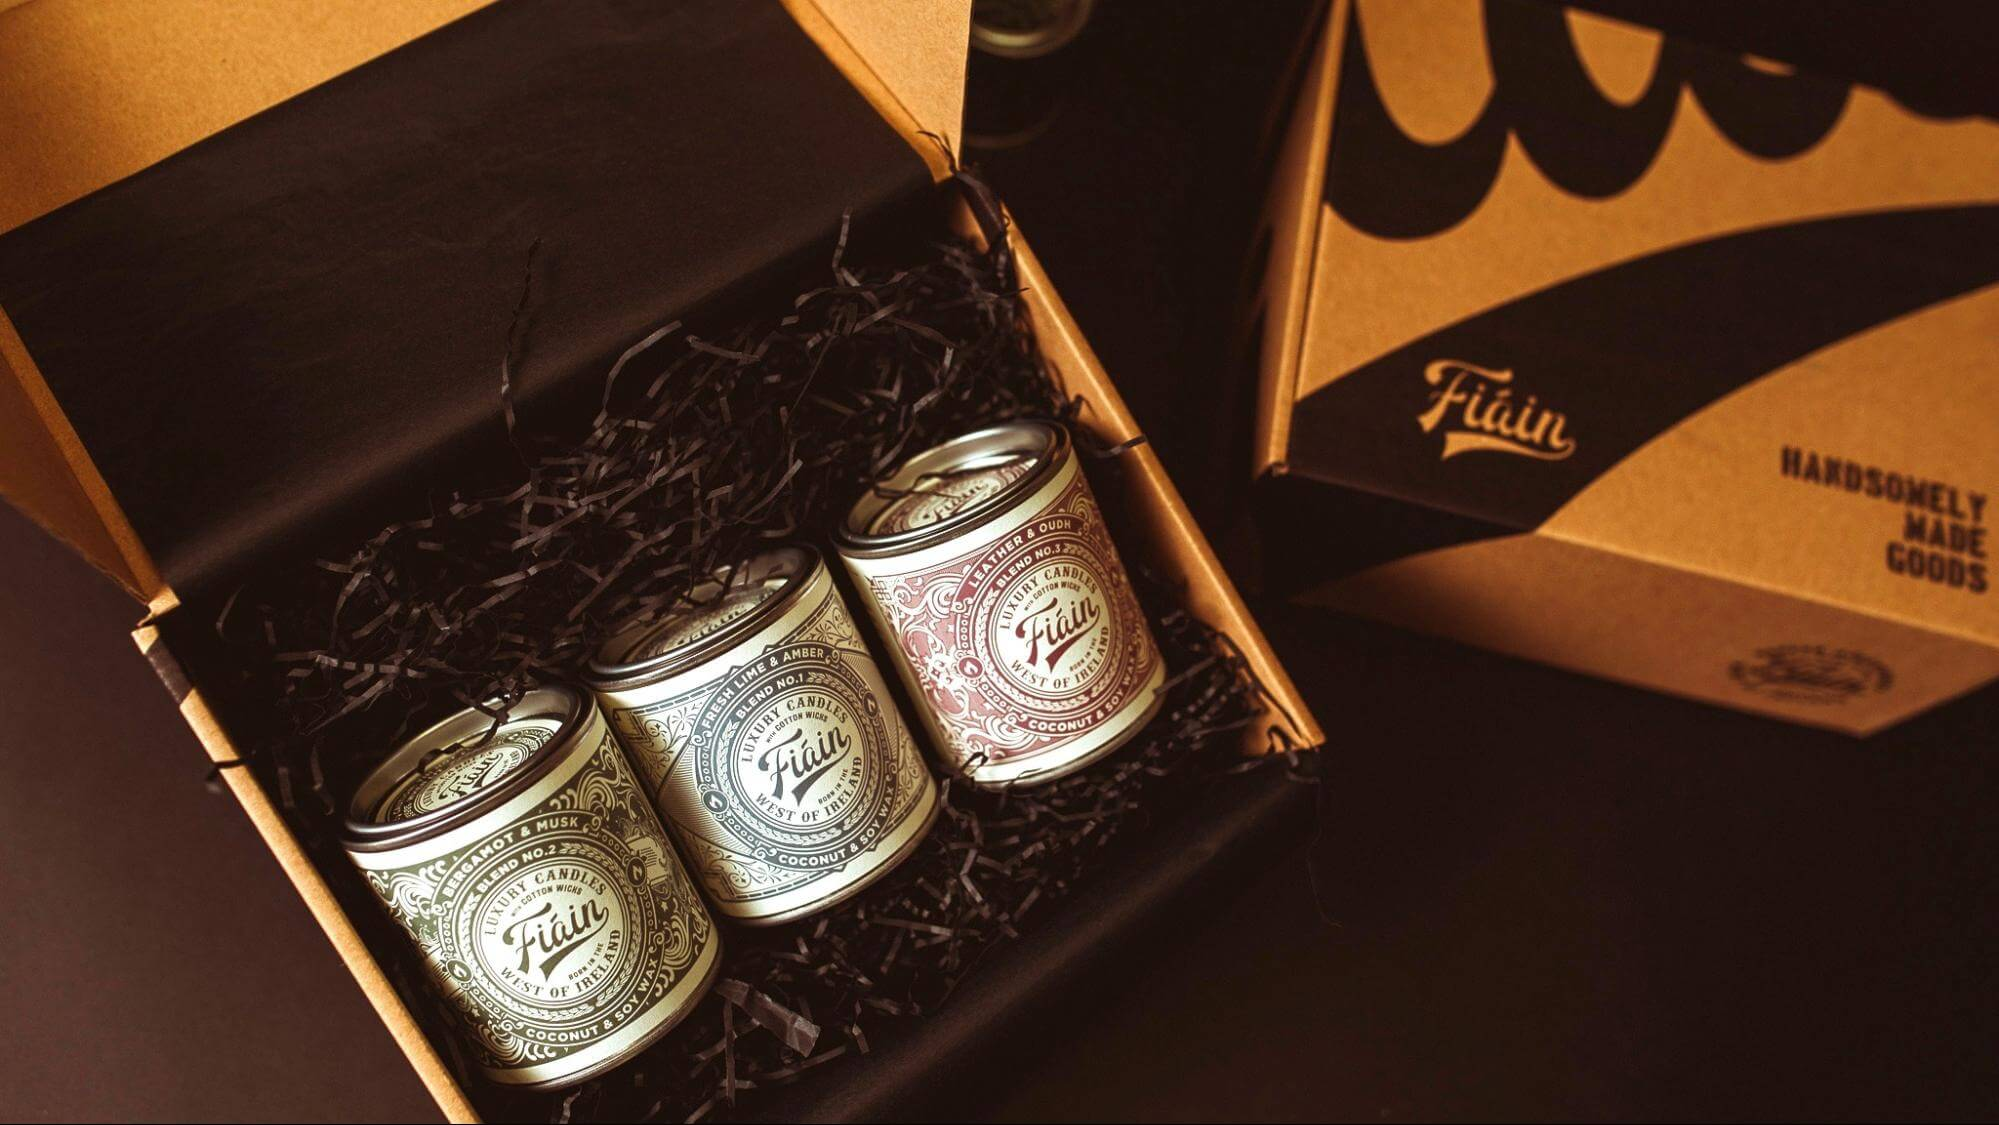 Fiain candles in an eco mailer box from packhelp